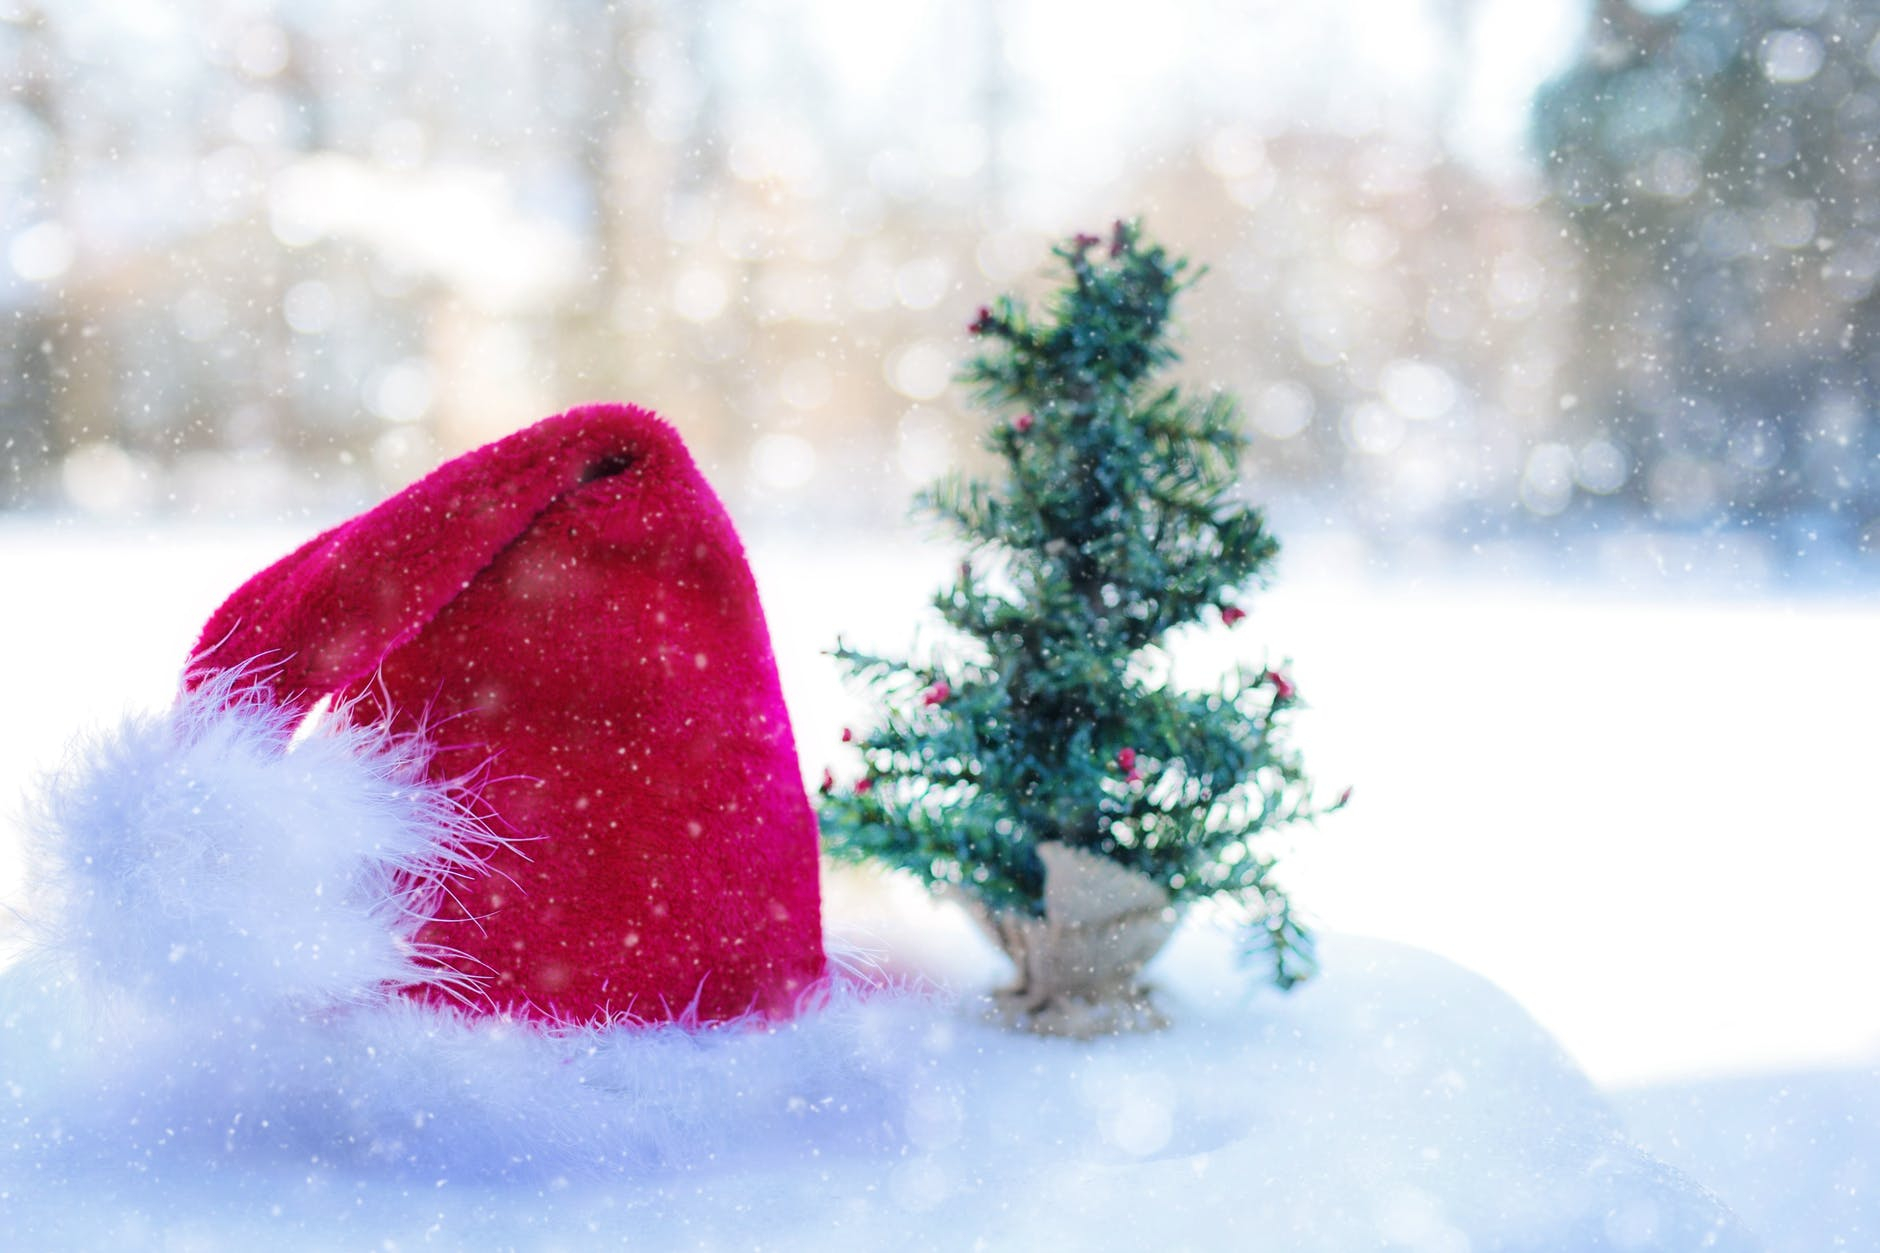 festive image of a santa hat in the snow